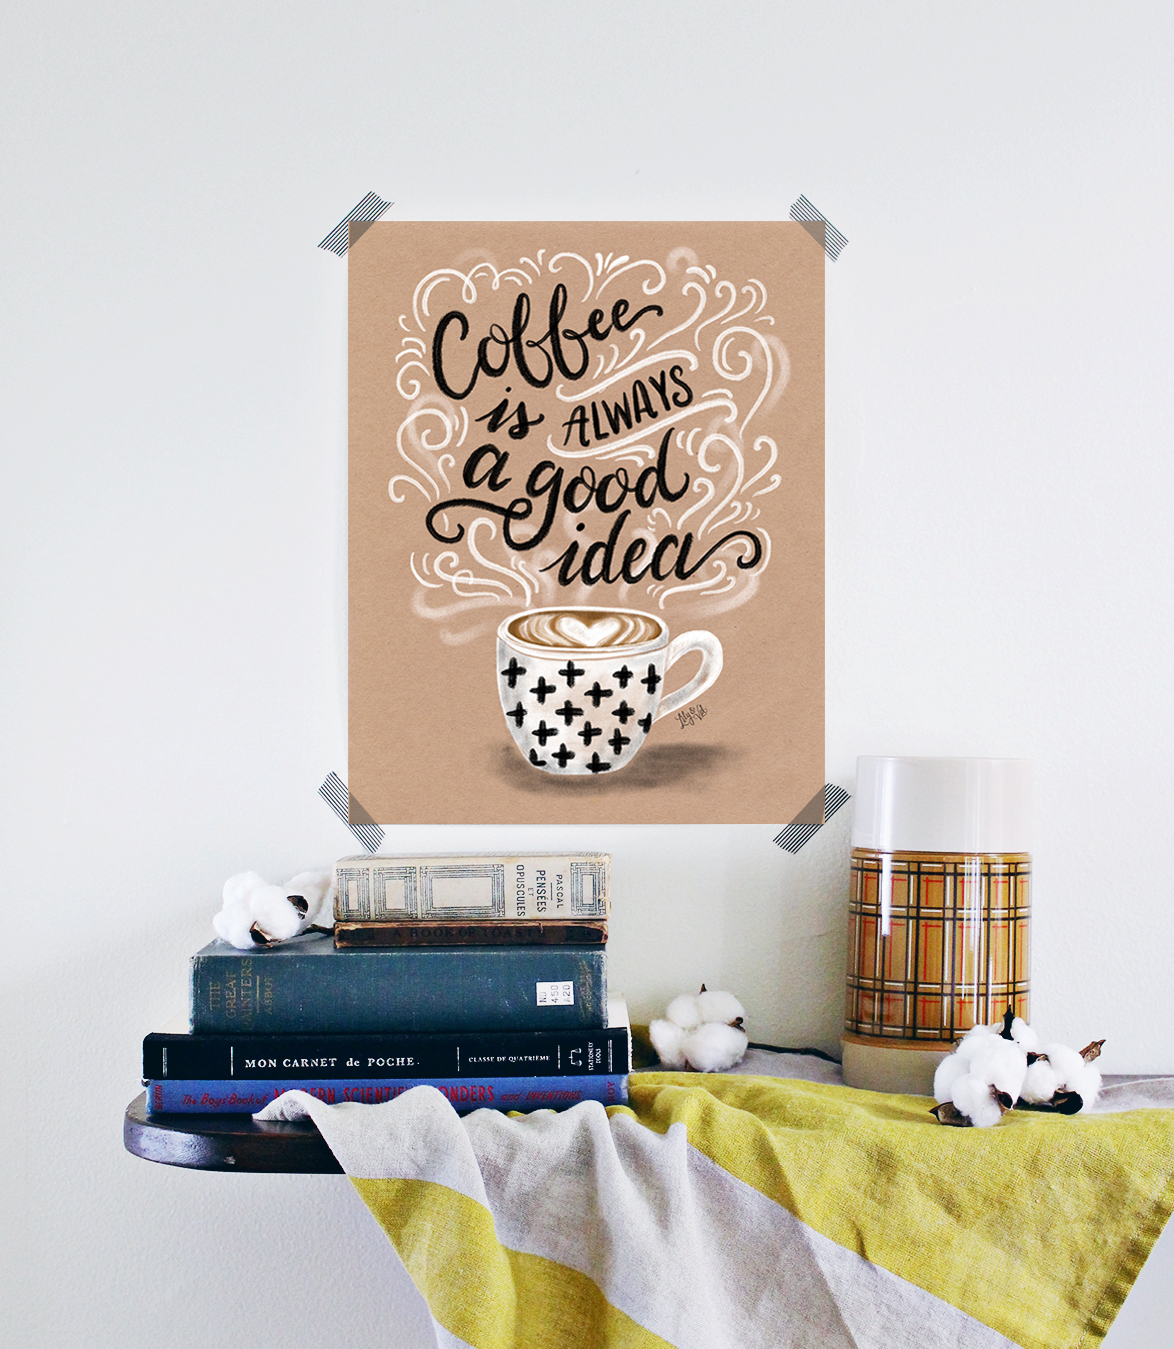 Coffee is always a good idea kraft paper print, hand drawn by Valerie McKeehan. A rustic-chic print for your coffee bar or kitchen.